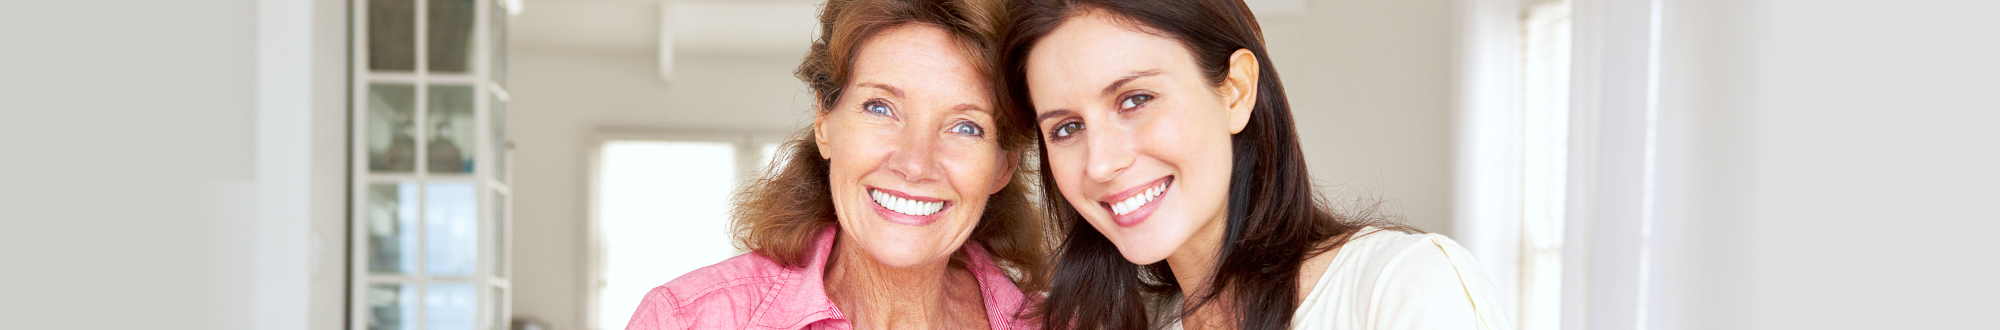 caregiver and old woman showing their genuine smile